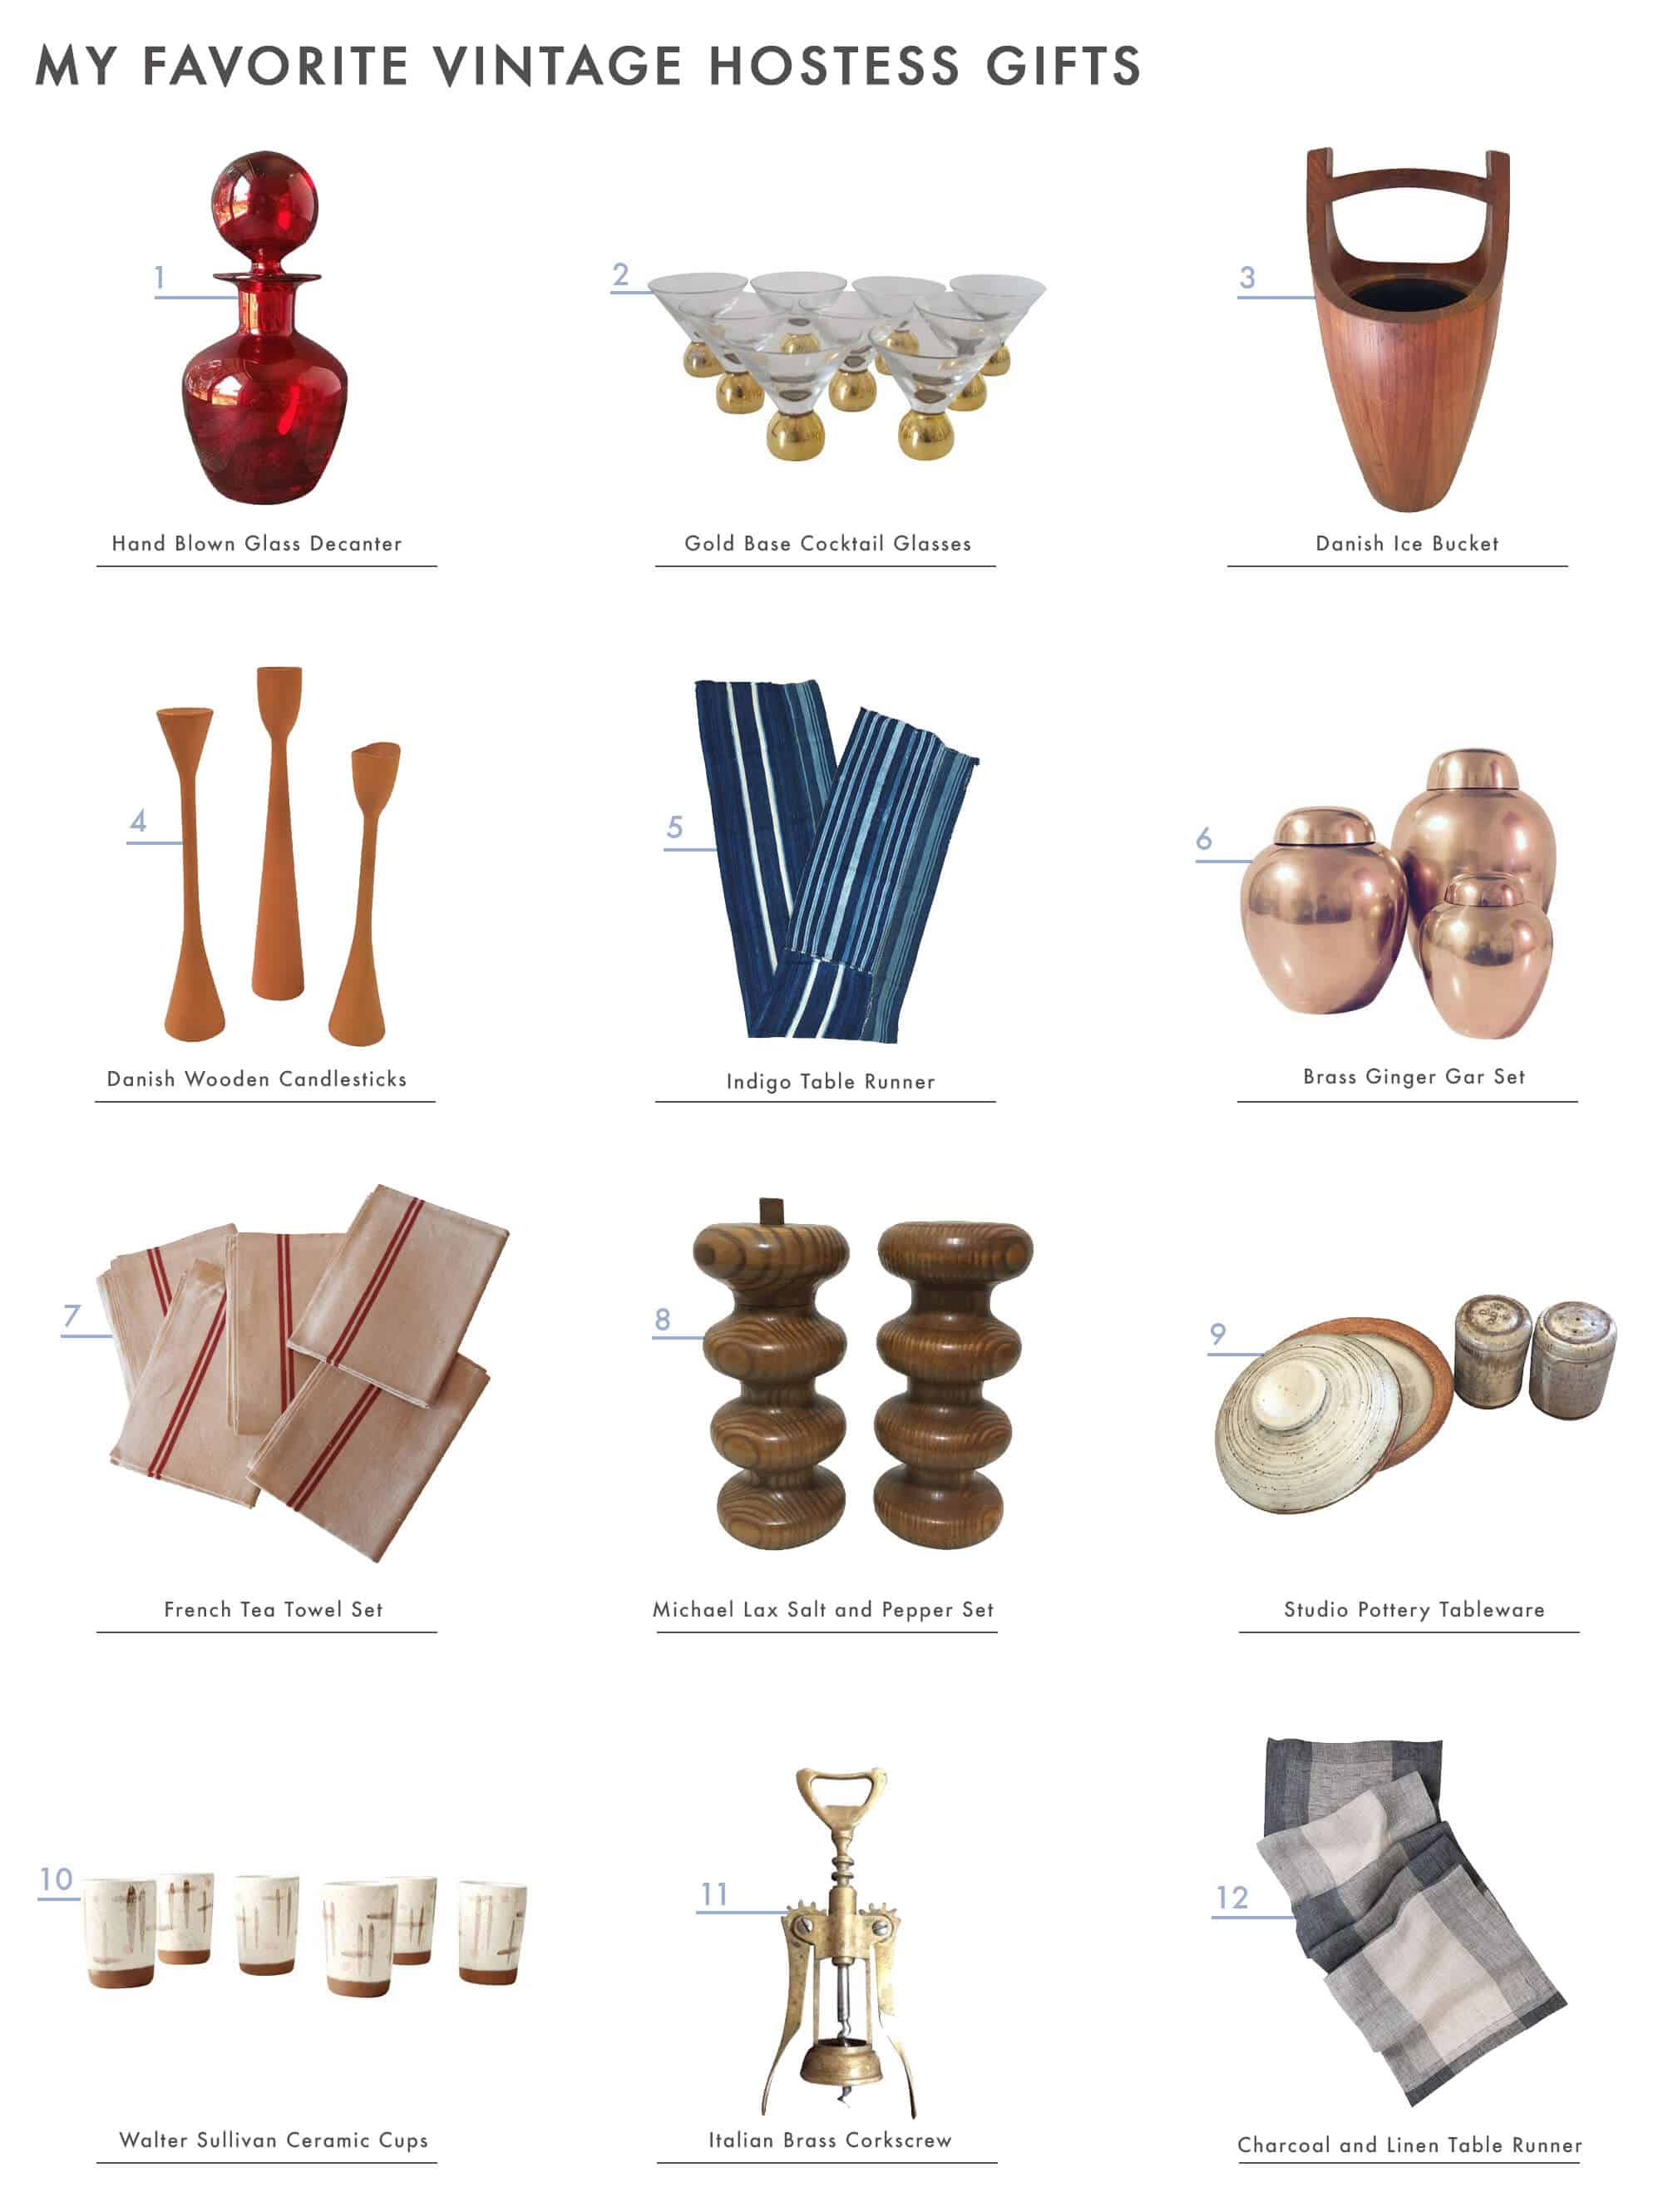 chairish_hostess-gifts_vintage_midcentury-modern_rounduop_gift-guide_emily-henderson